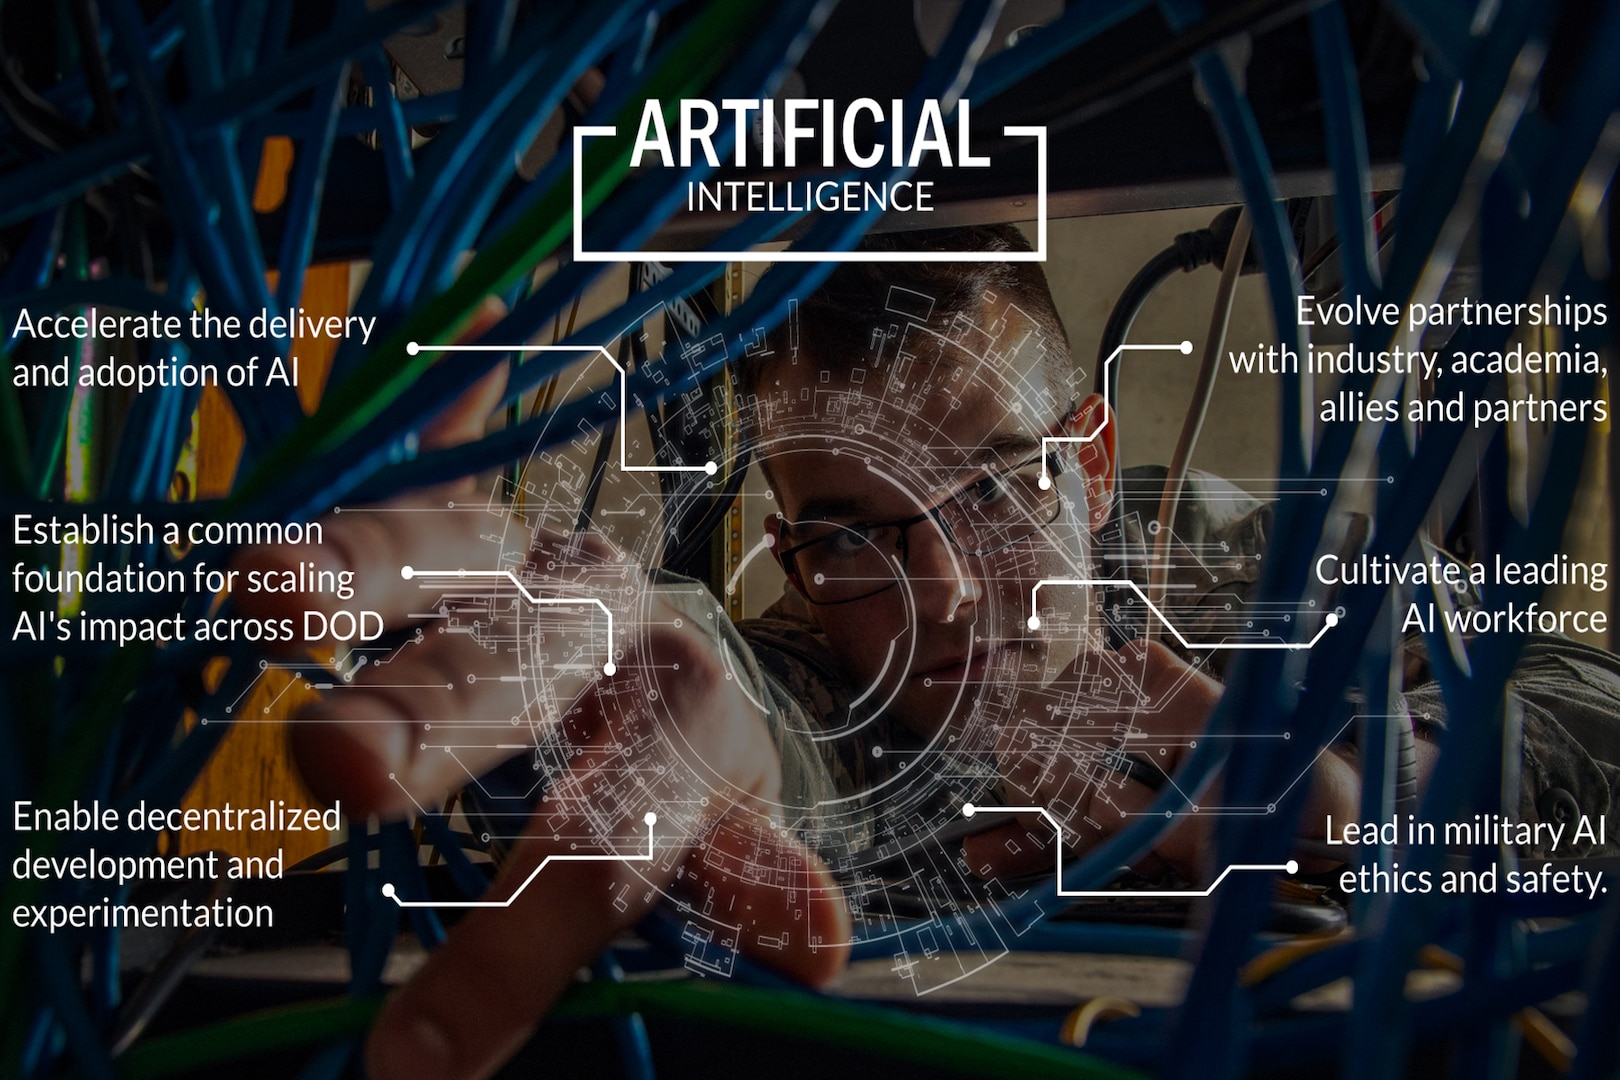 Artificial Intelligence Deployment Requires Diverse Image Data